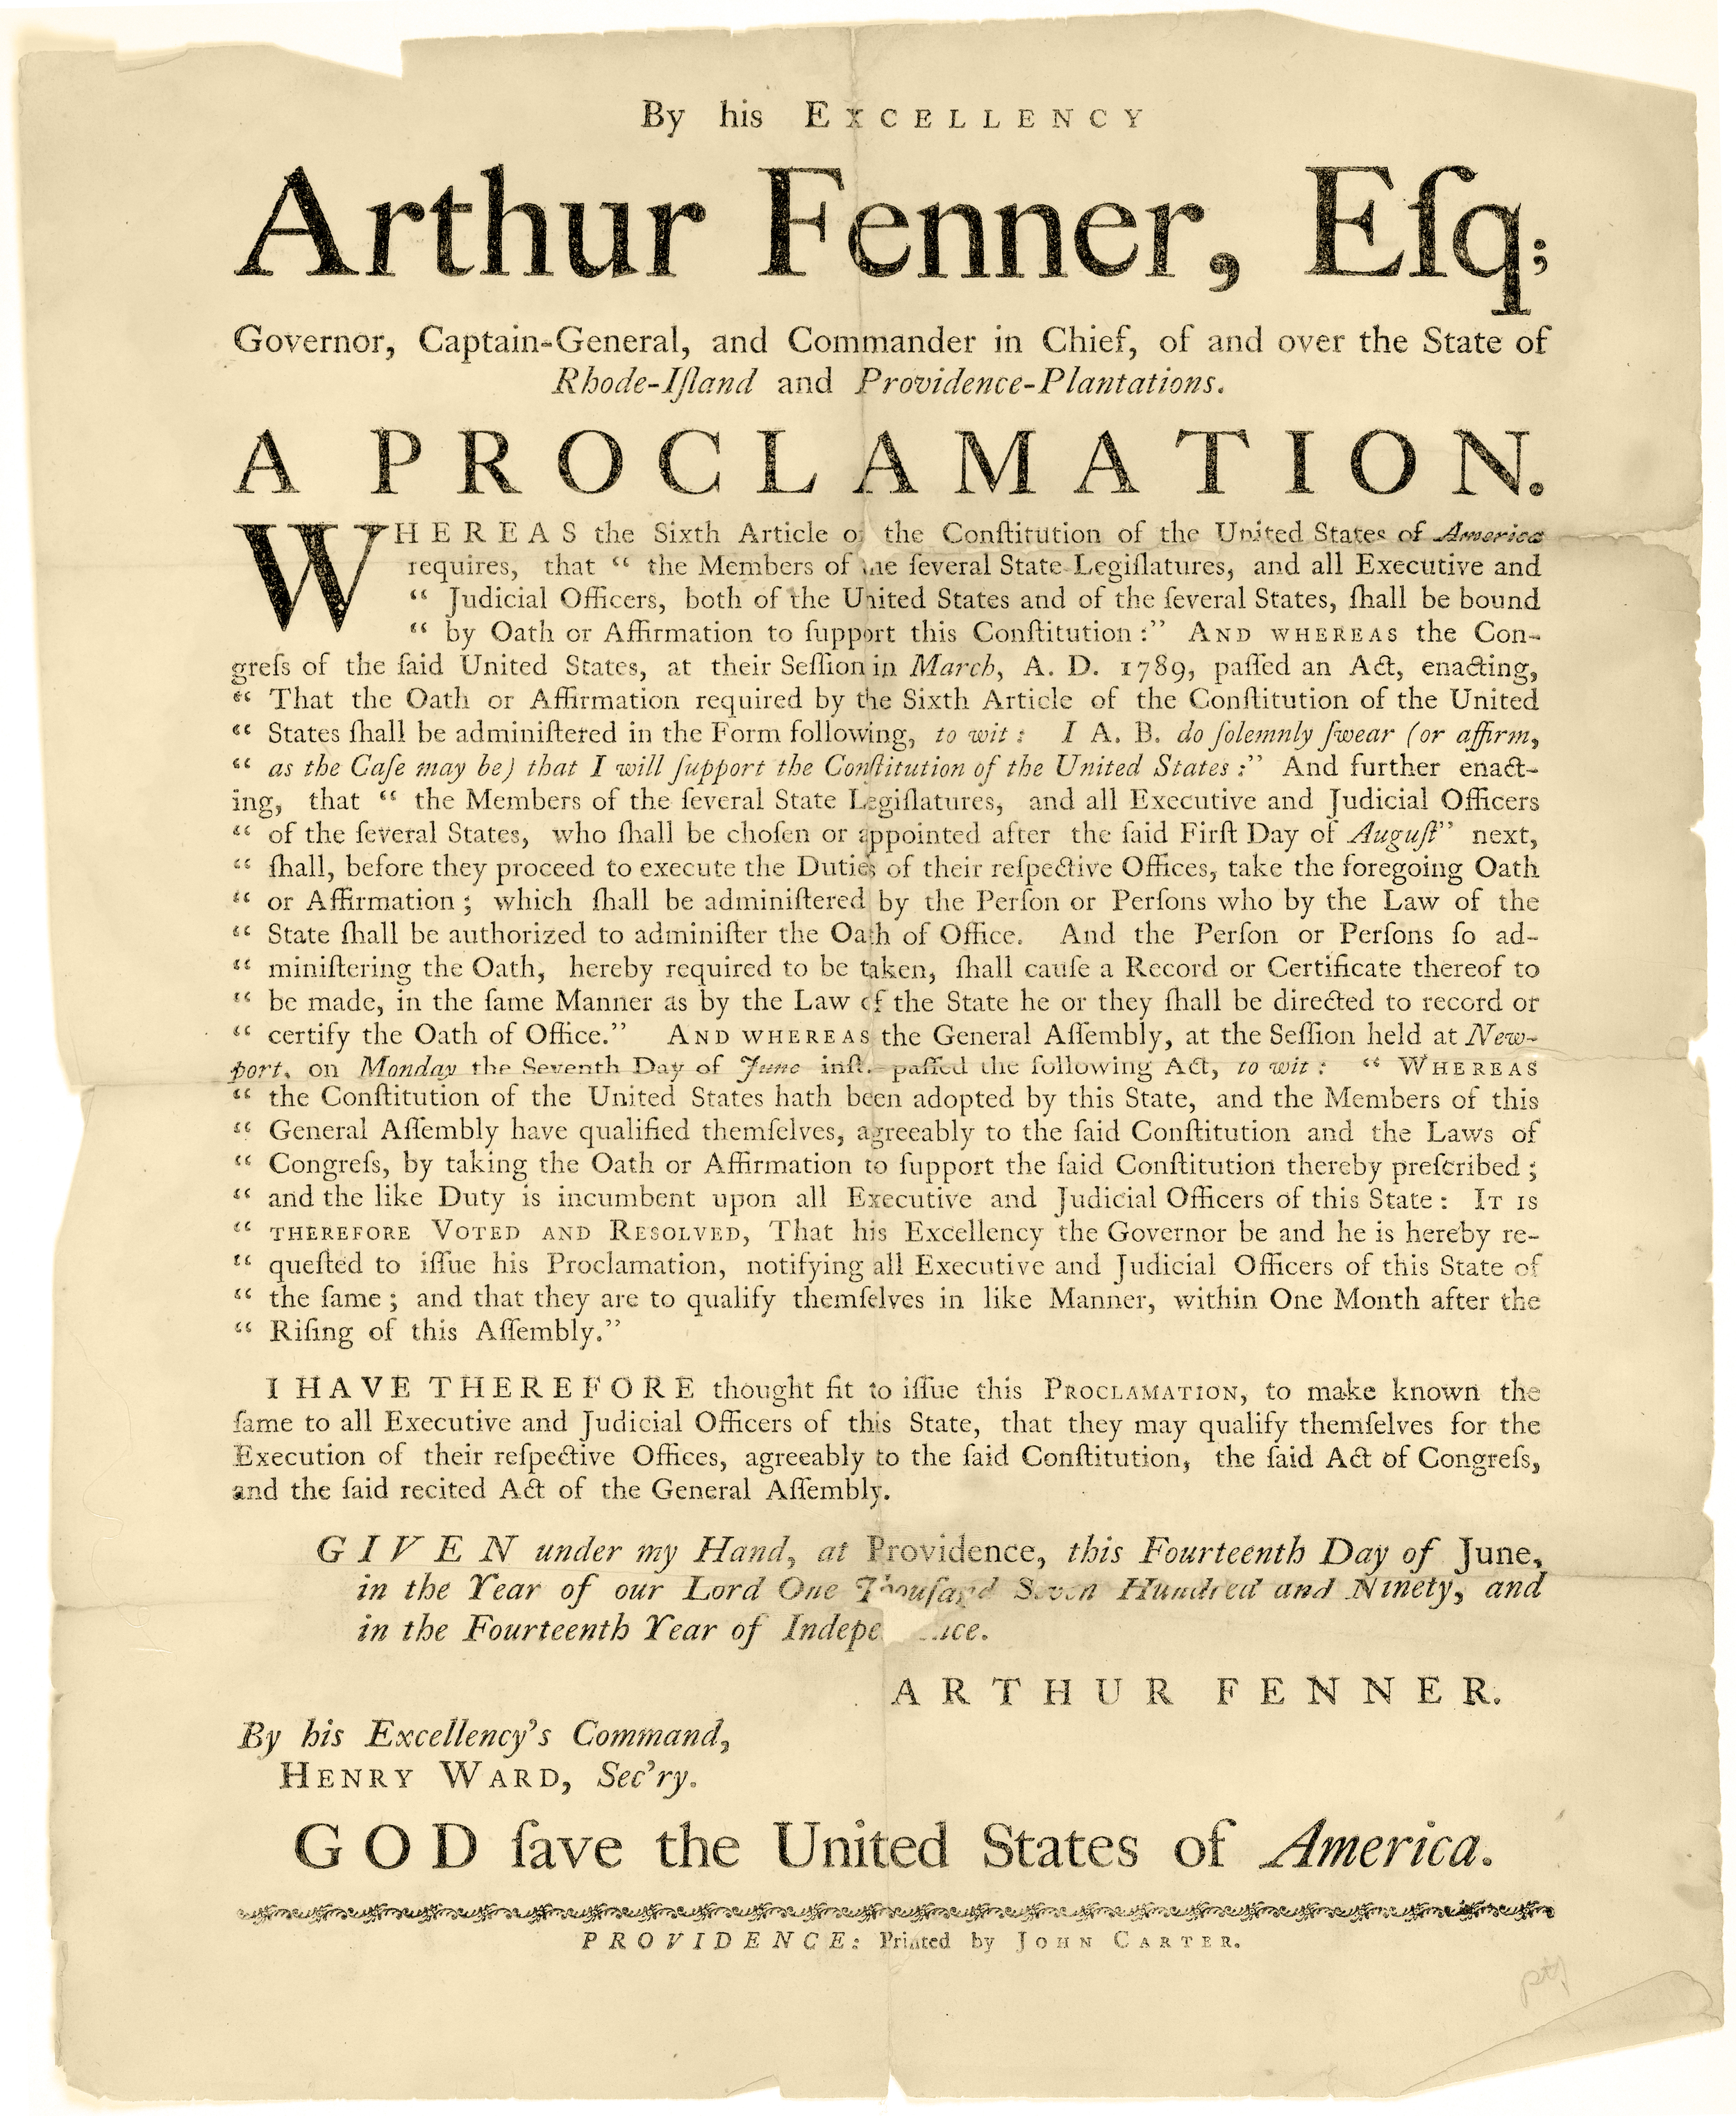 Proclamation requiring government officials to swear allegiance to the U.S. Constitution, 14 June 1790. (memory.loc.gov)